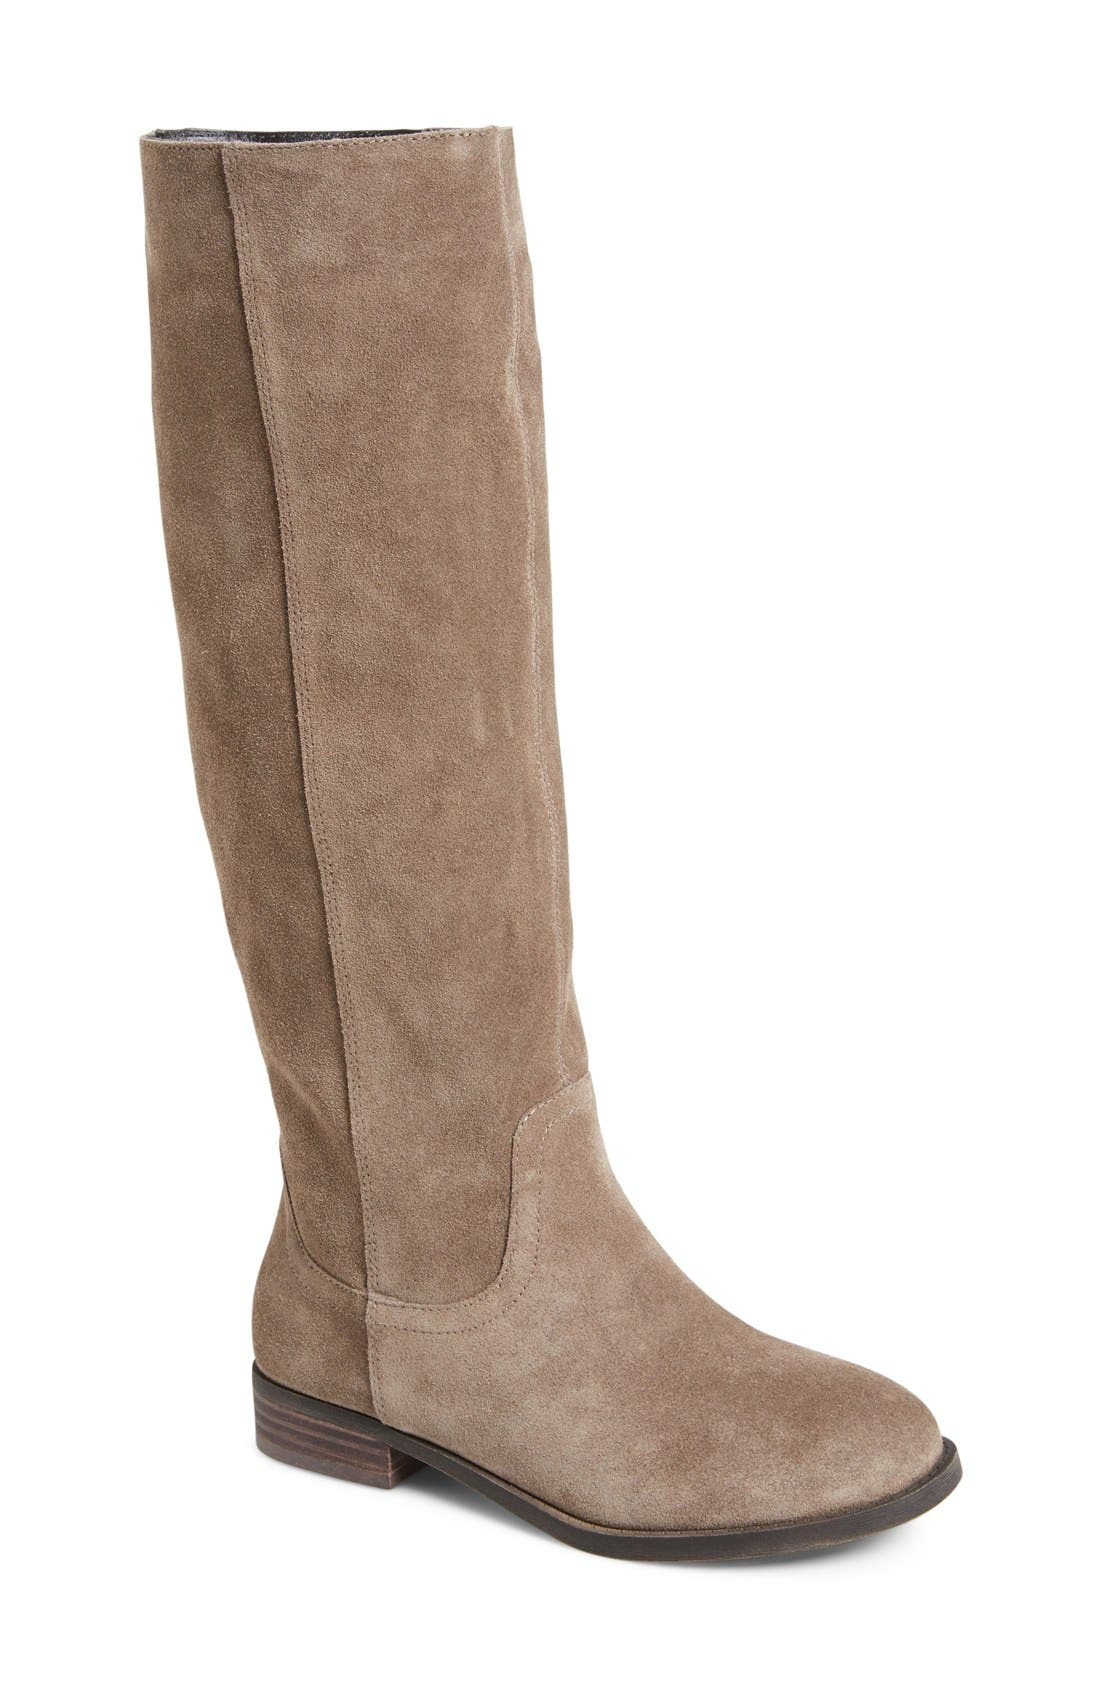 Main Image - Sole Society 'Kellini' Suede Knee High Boot (Women)